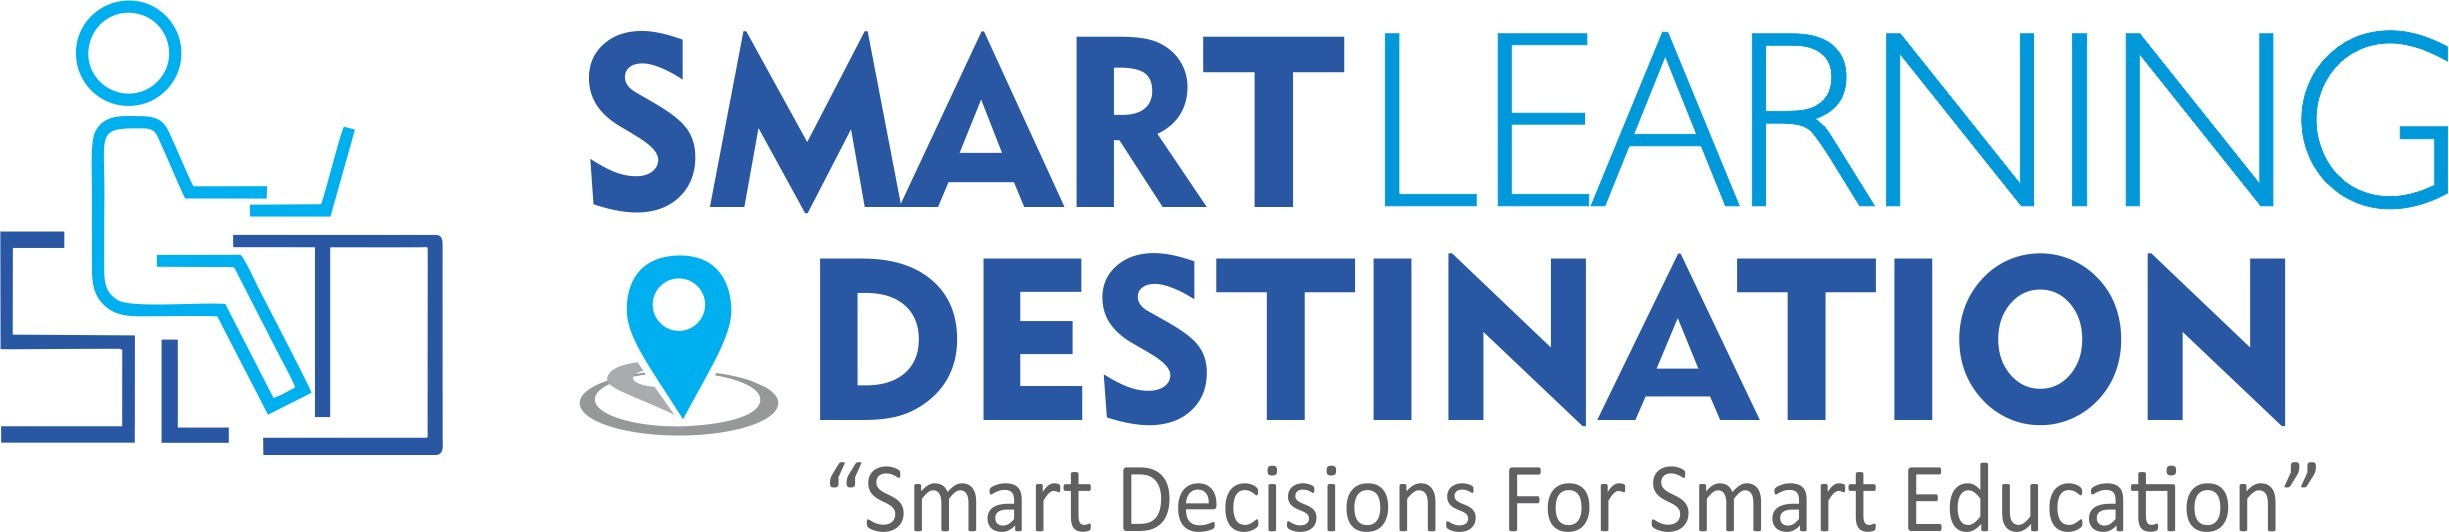 smartlearning (@smartlearning) Cover Image